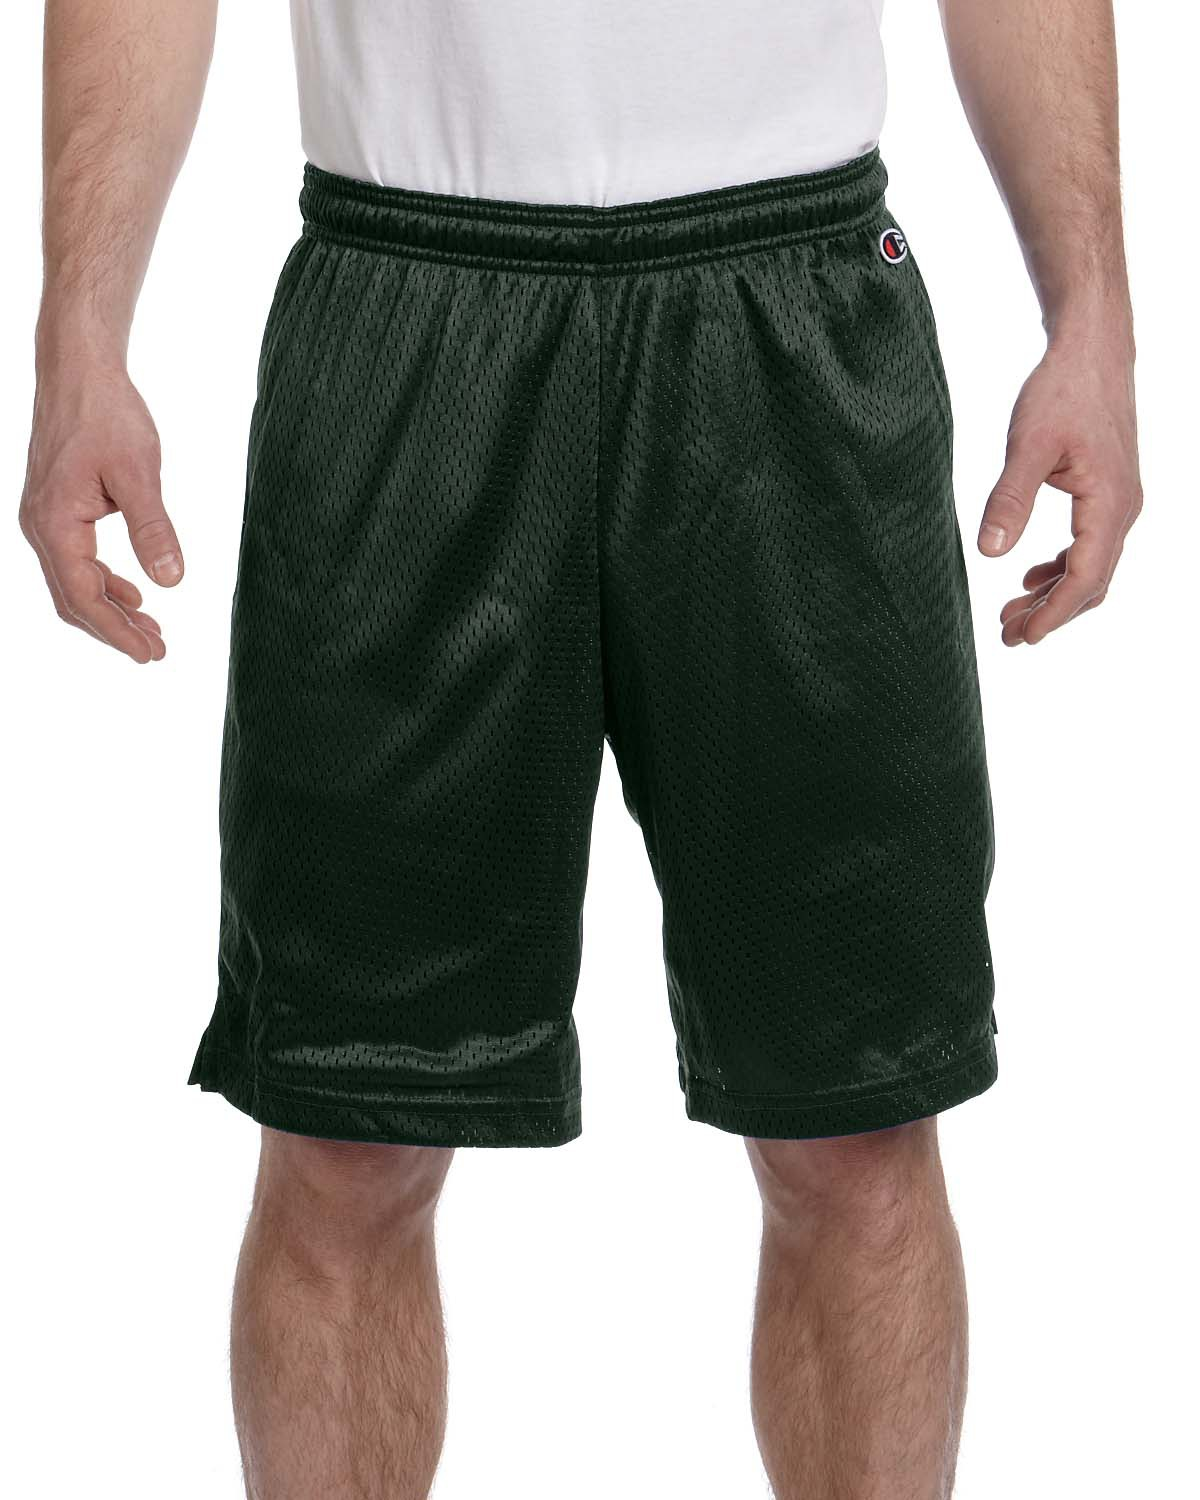 Find the right pair of men's gym shorts for your active lifestyle. Get the lightweight feel and performance you crave with the right pair of athletic shorts. Find shorts and apparel designed for your sport or activity—from your most strenuous training regimens to comfortably lounging at home.